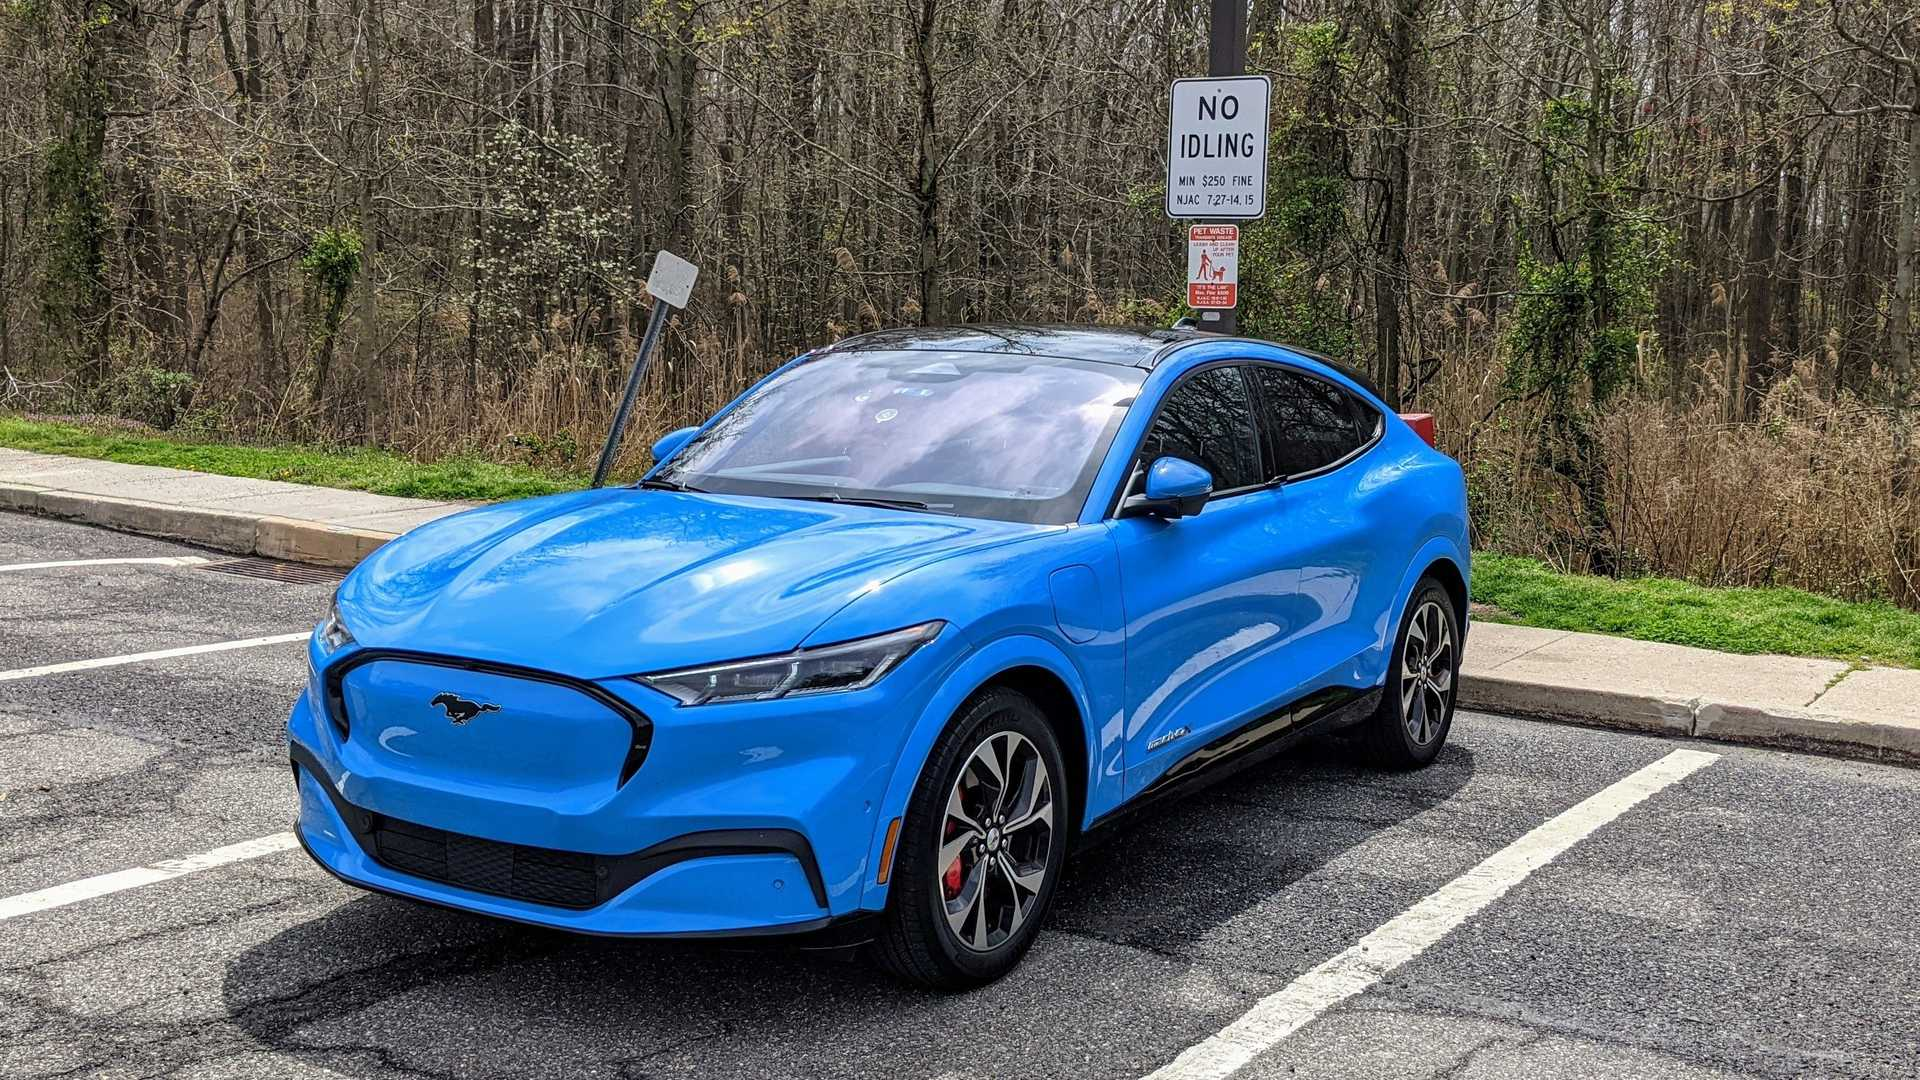 2021 Ford Mustang Mach 1 News